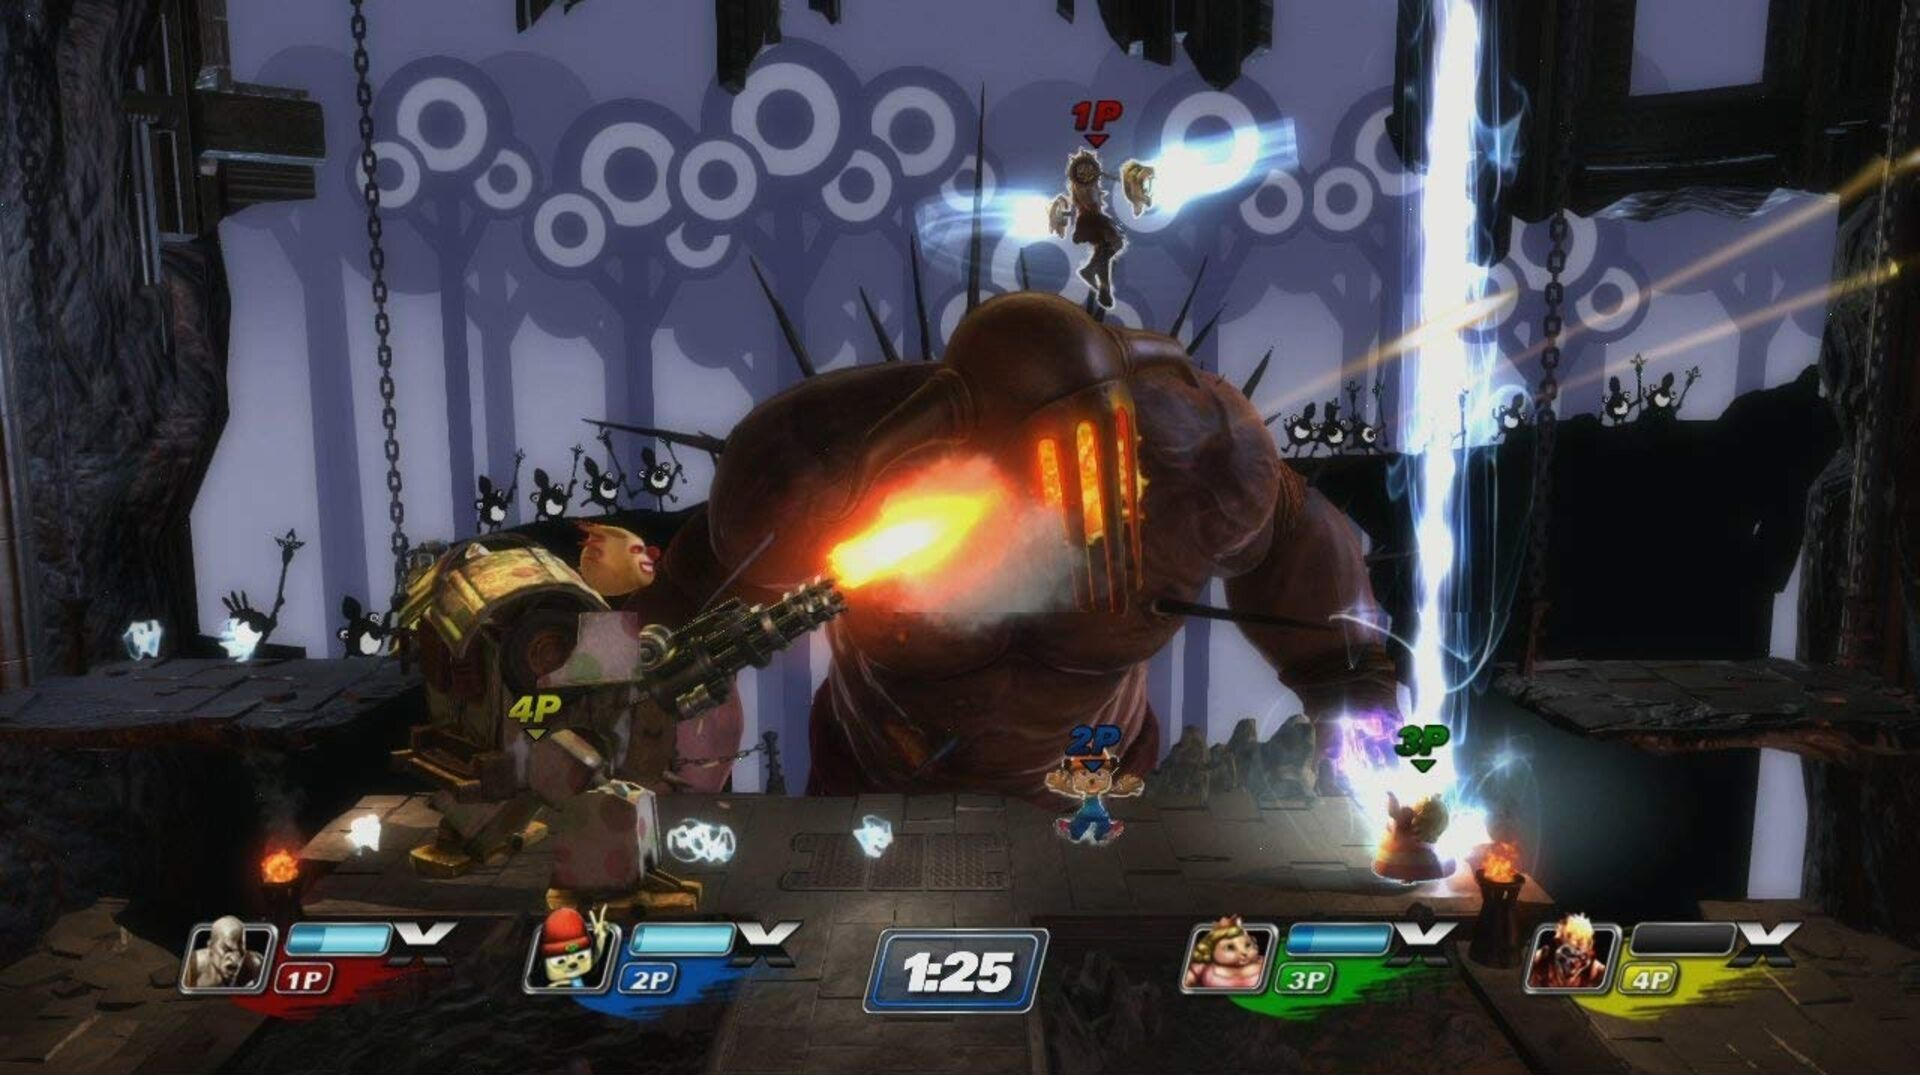 PlayStation All-Stars Battle Royale and other PS3 games